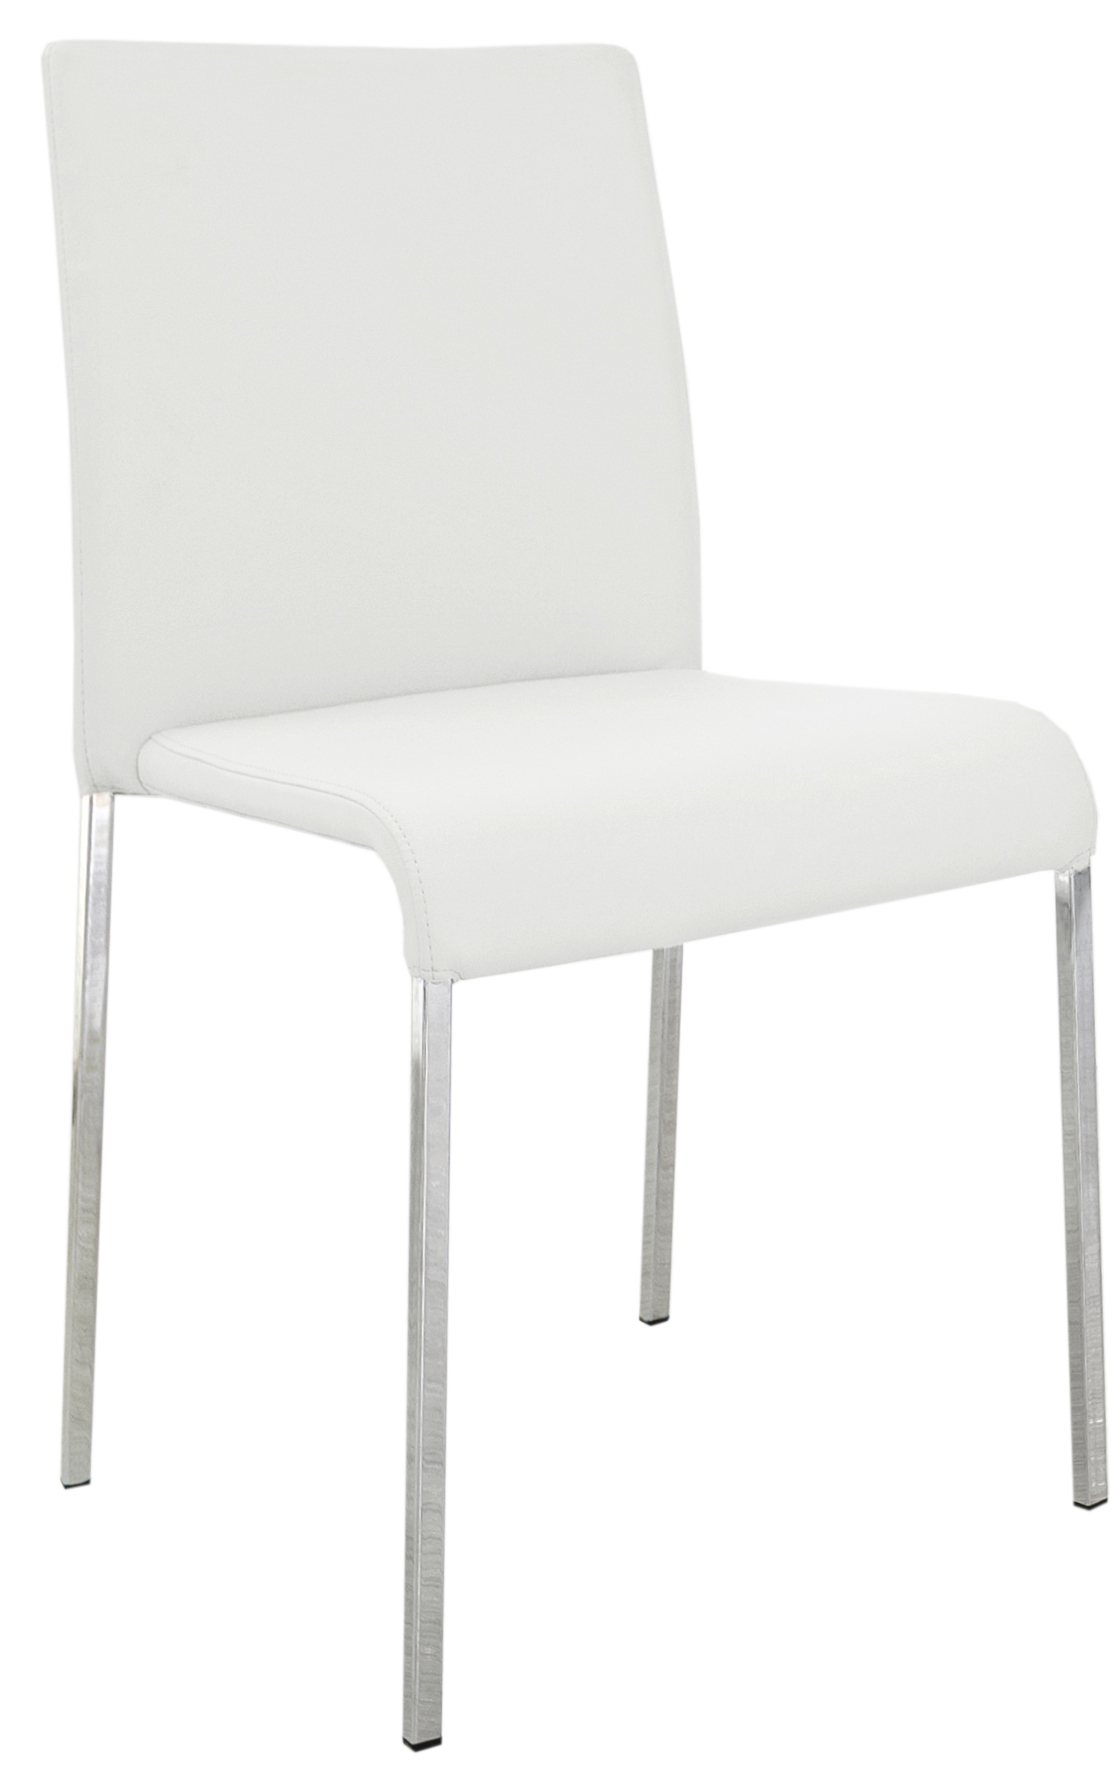 Tori Dining Chair in White